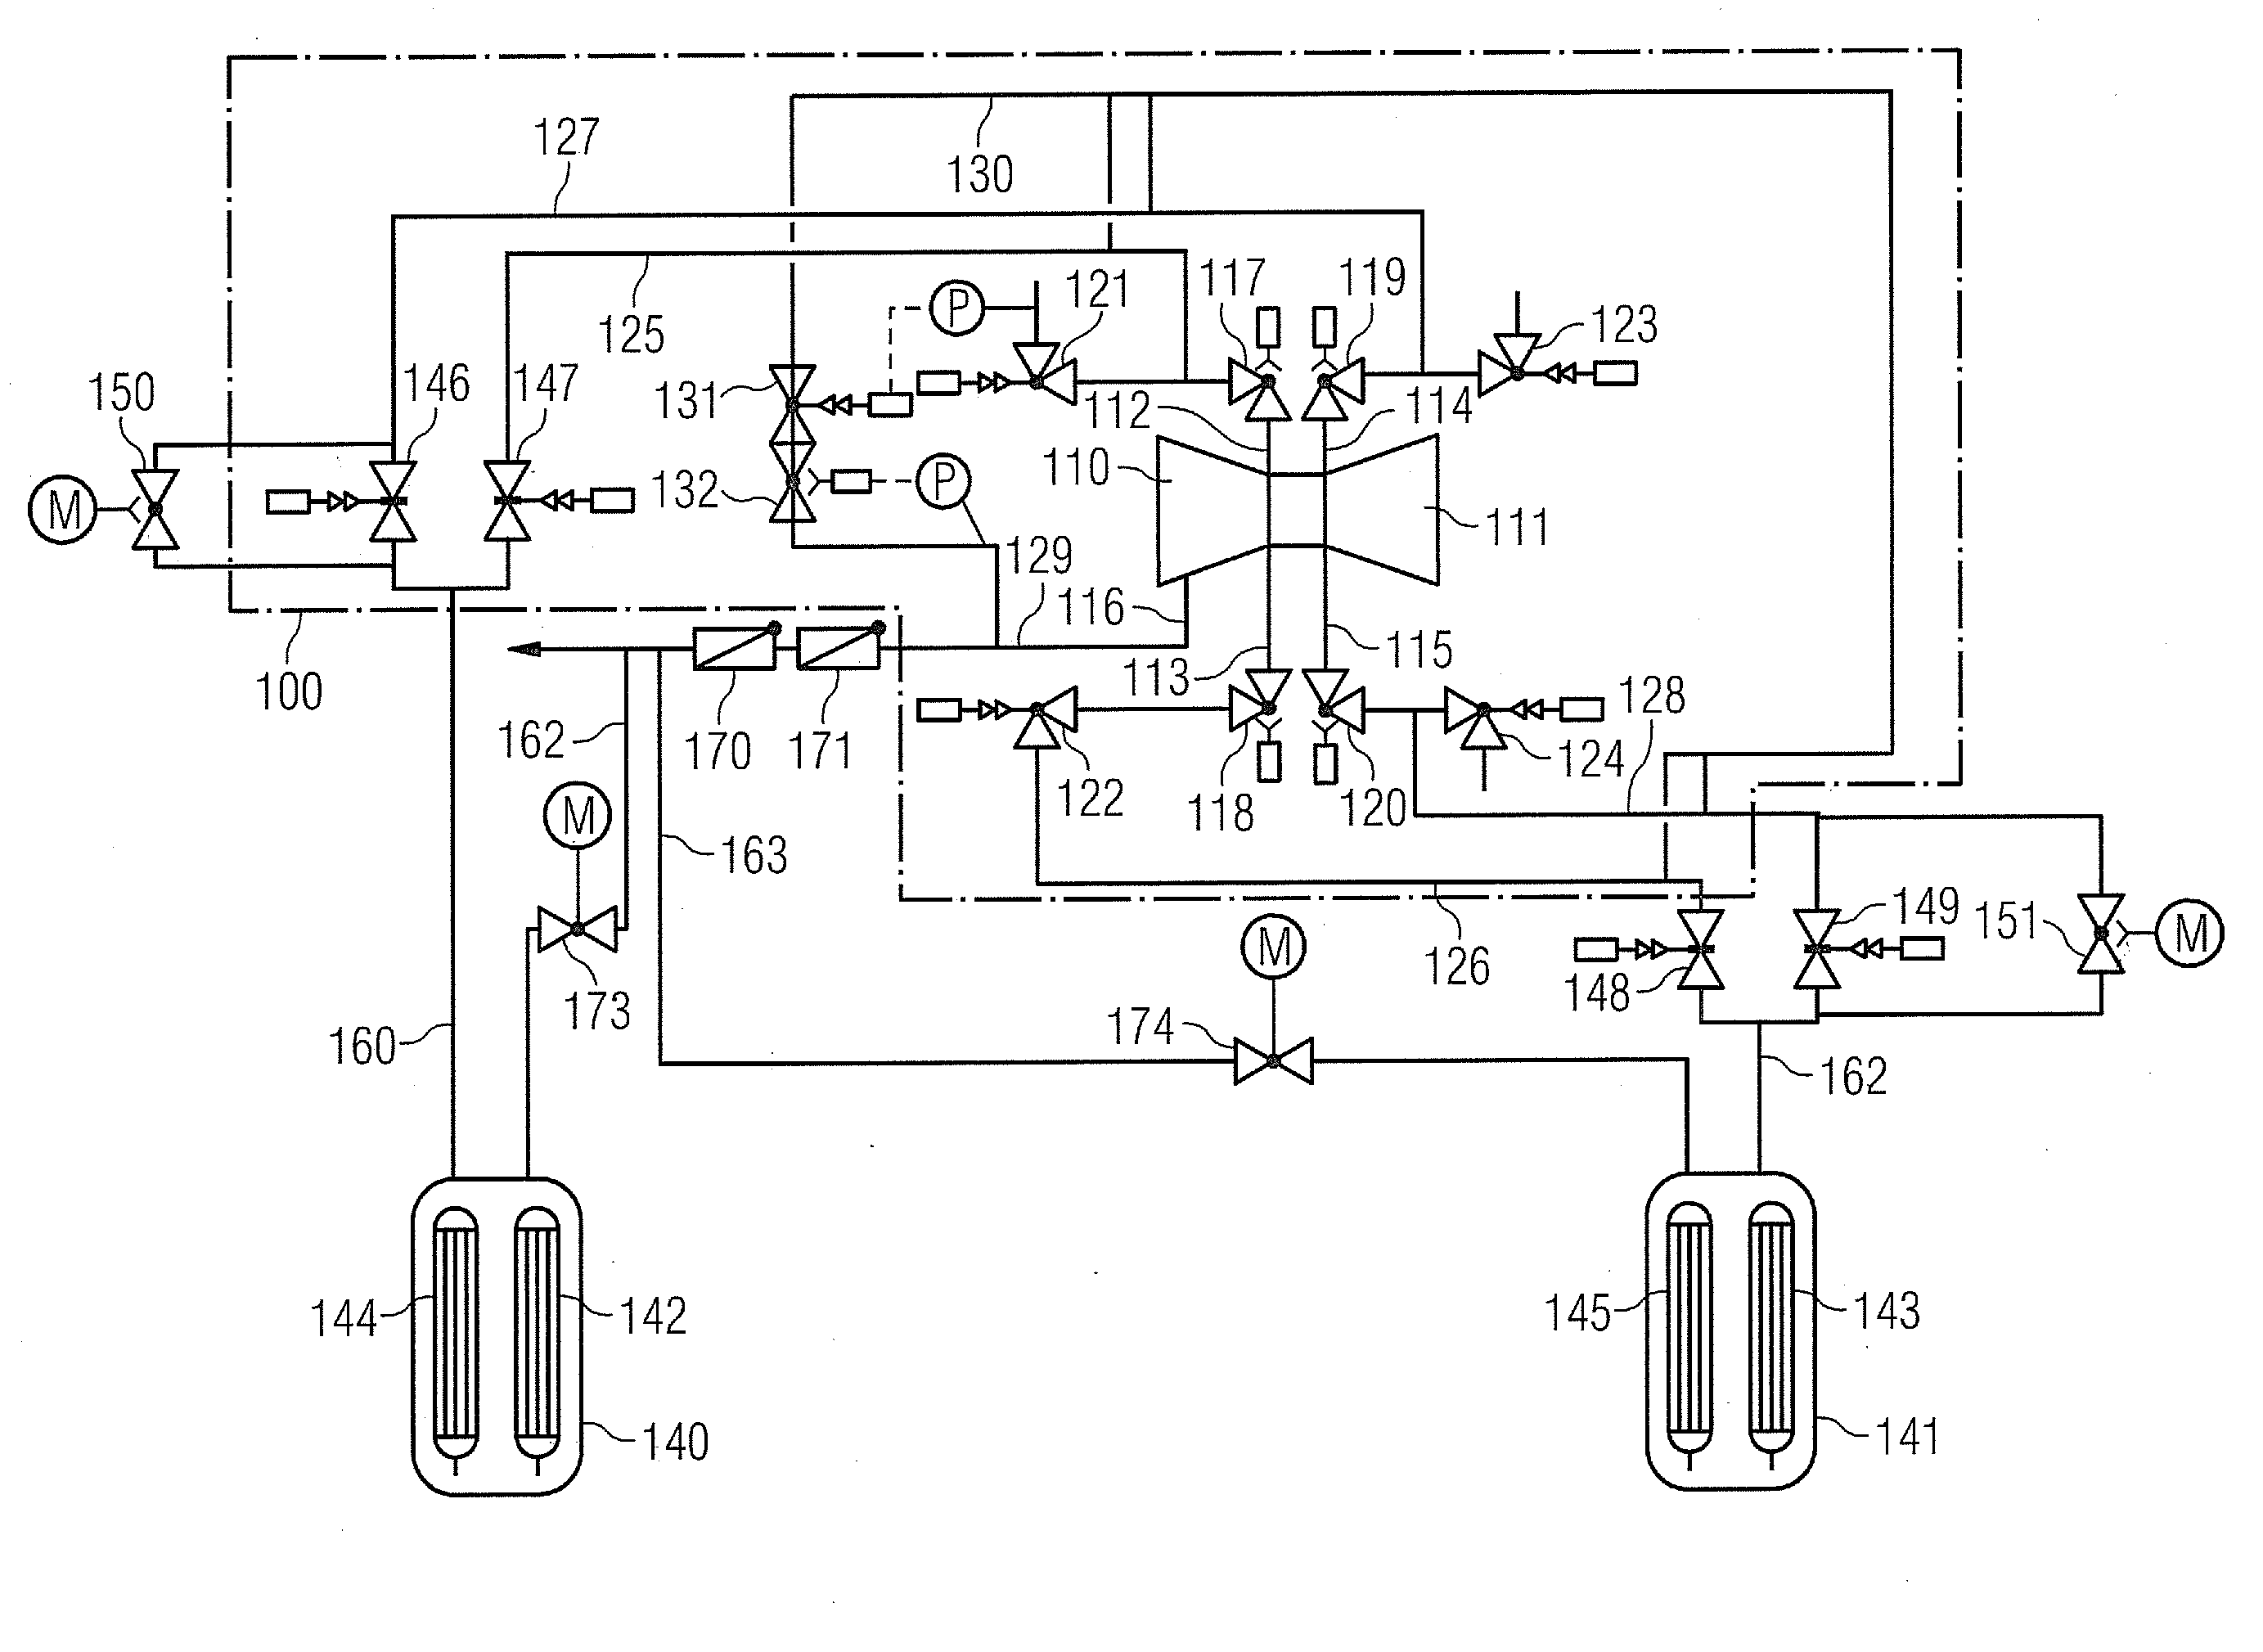 Patent US Steam turbine system for a power plant